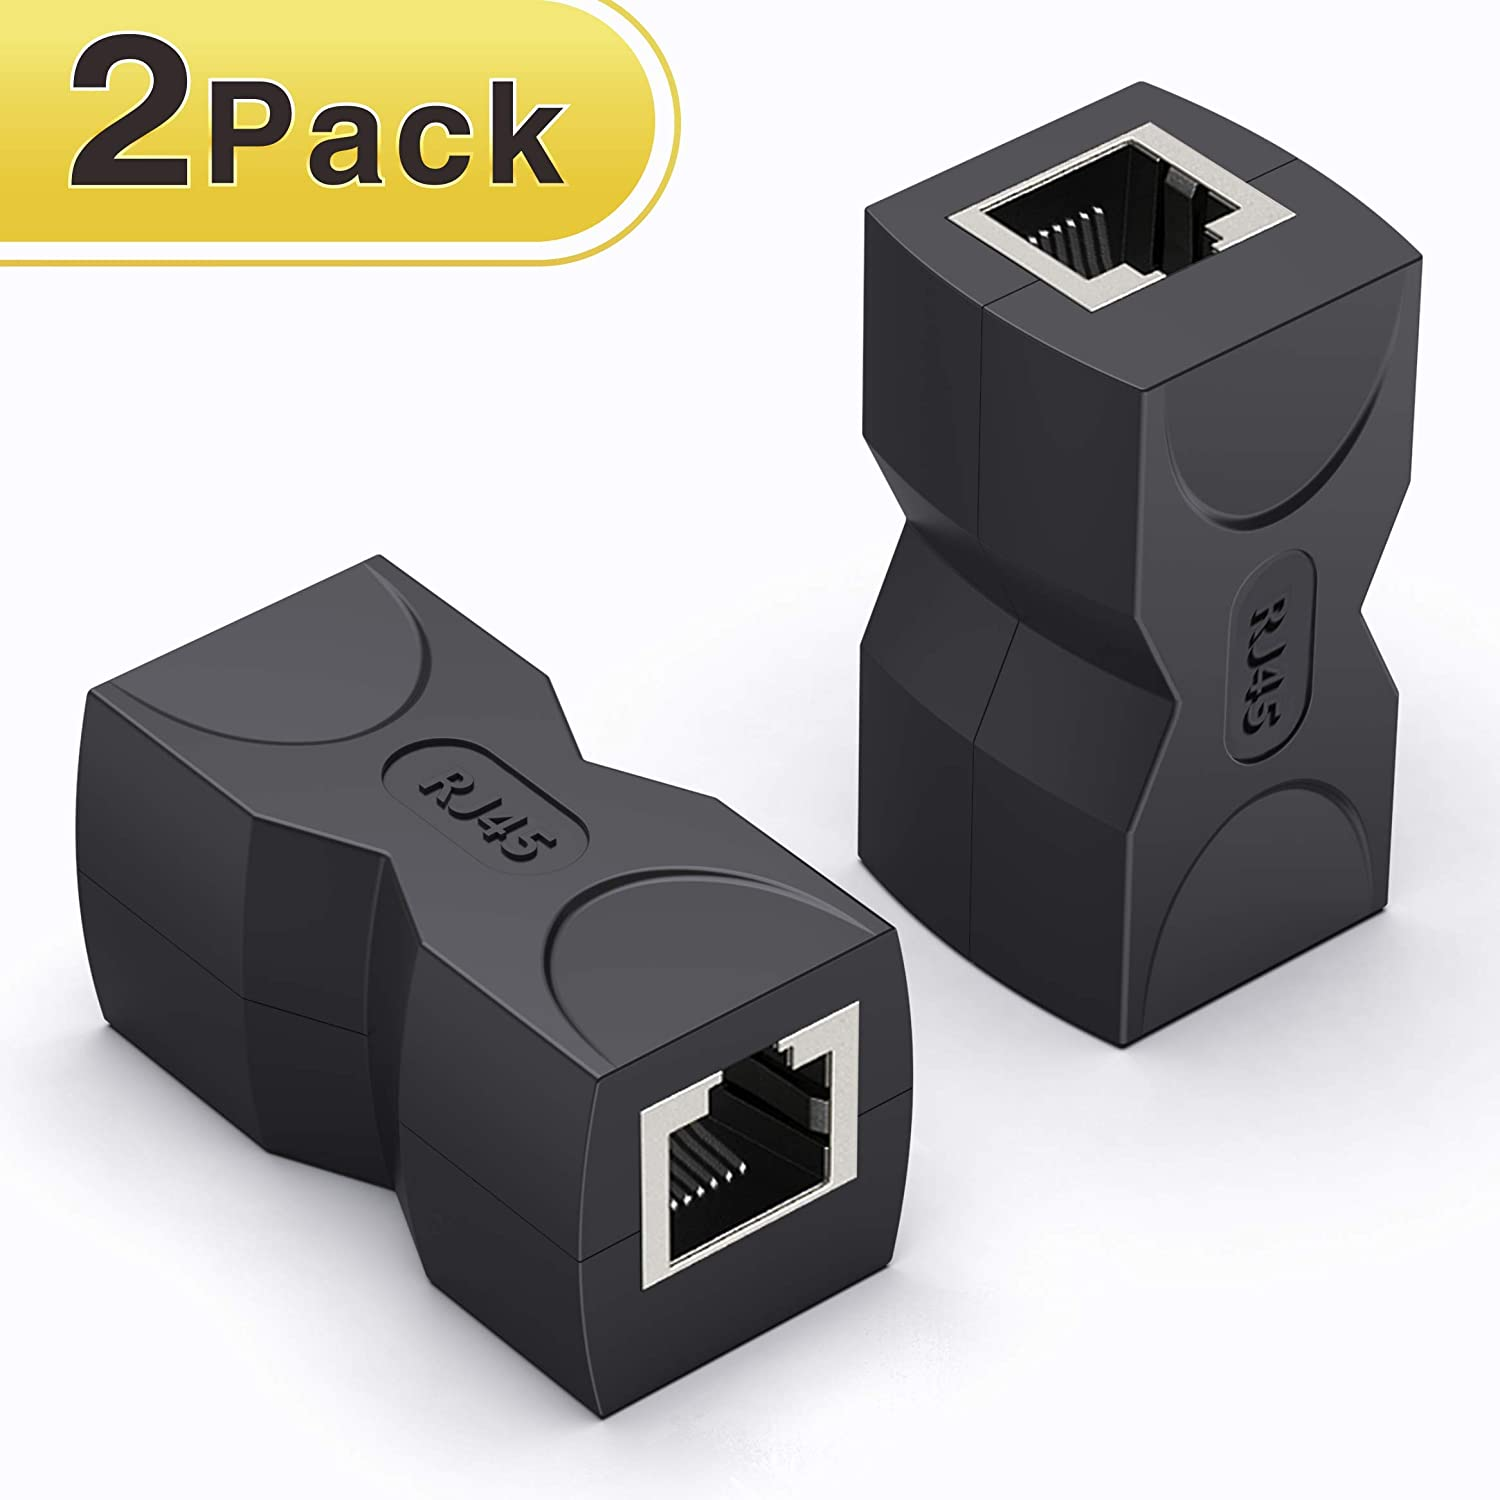 Wenter RJ45 Coupler Ethernet Connector 55% OFF Line Cat6 Cat7 67% OFF of fixed price in